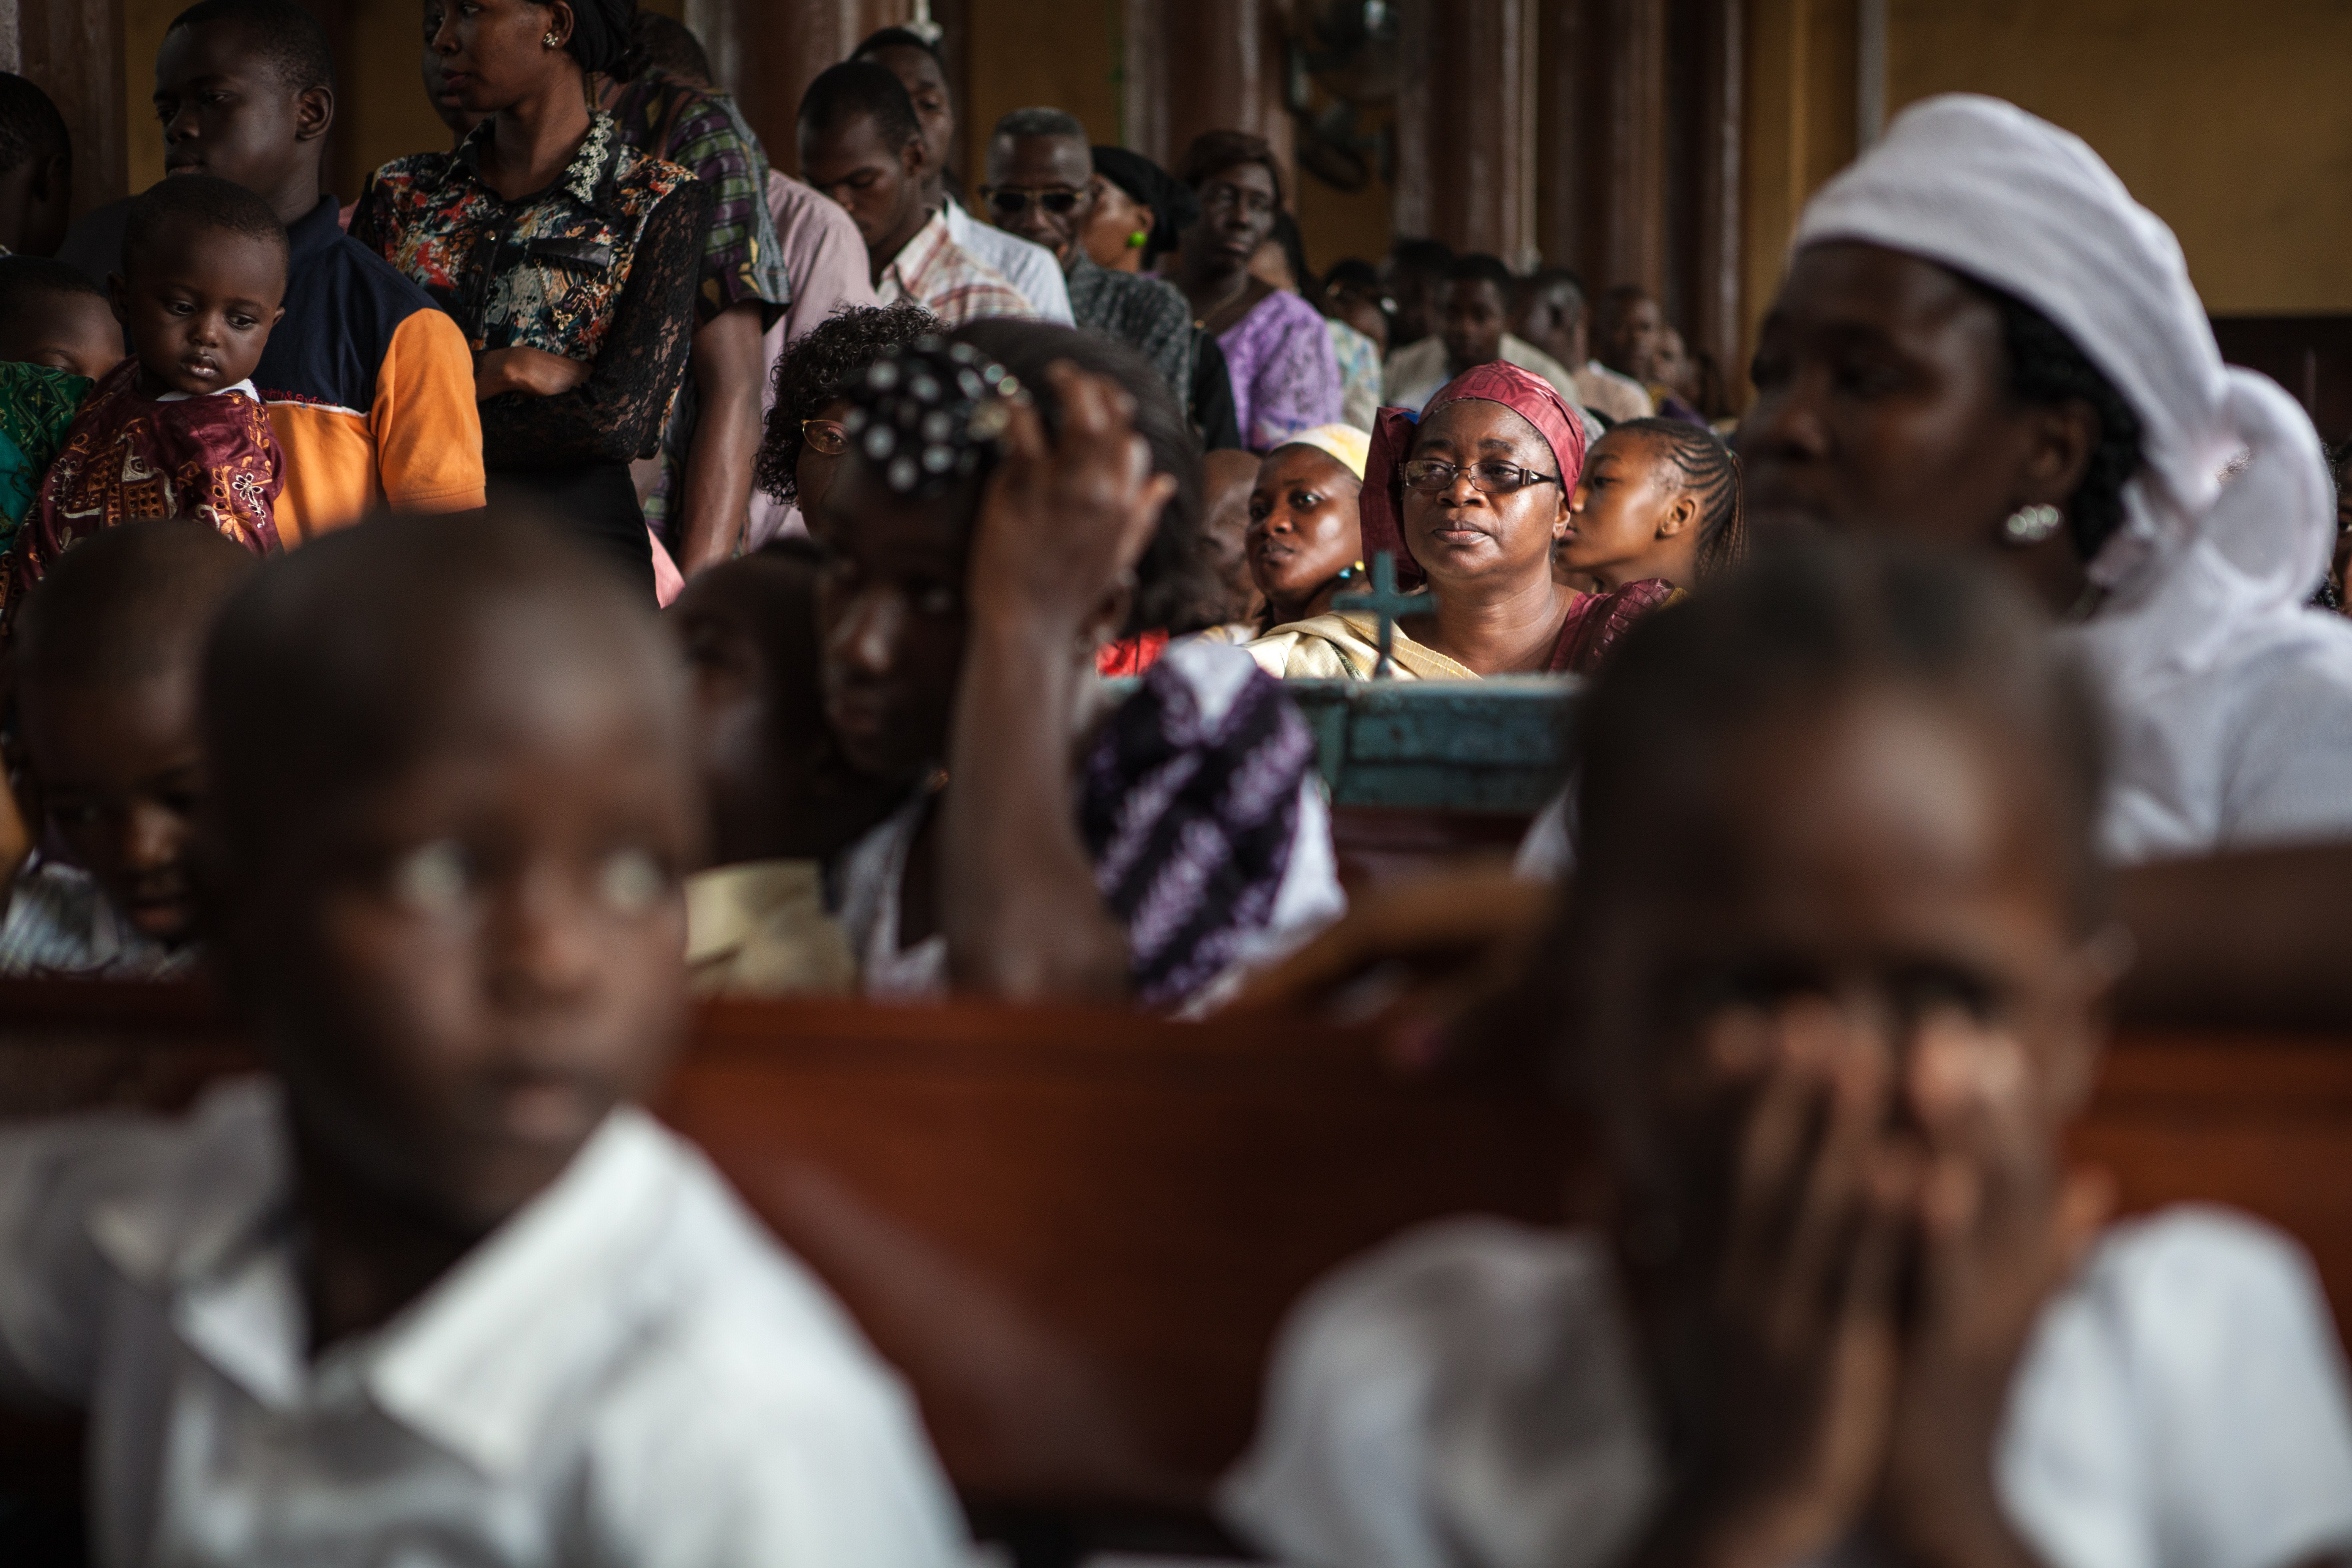 People pray for victims of the Ebola virus, on October 4, 2014 in Saint Anthony's Catholic church in the capital of Sierra Leone, Freetown.